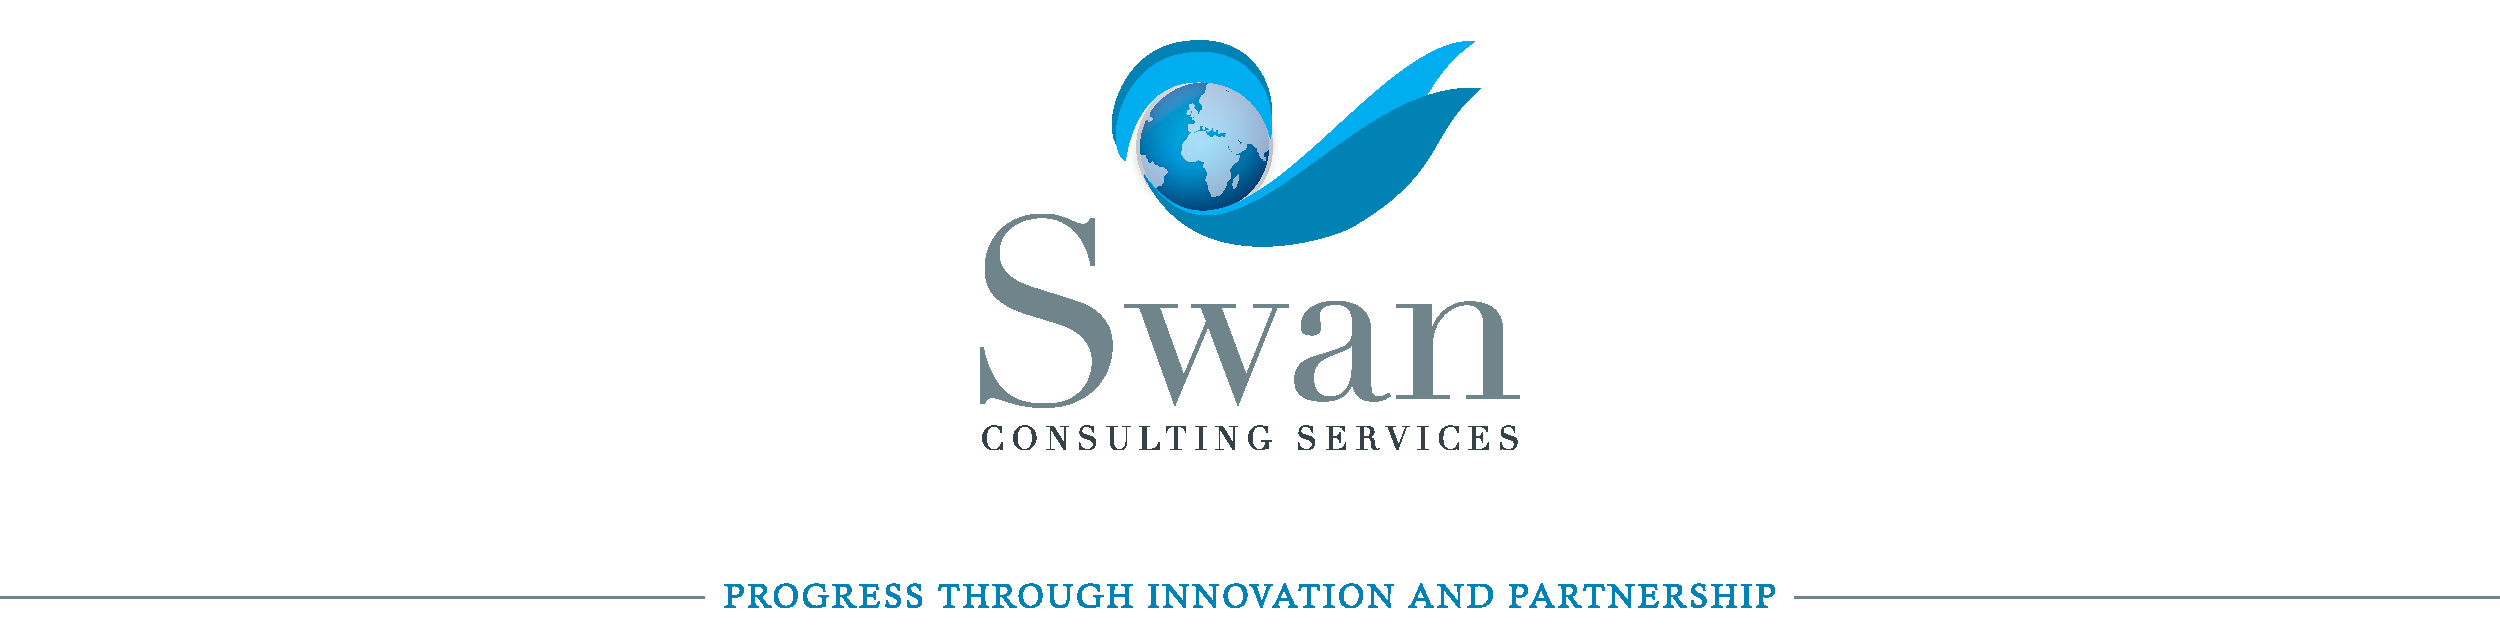 swanconsulting